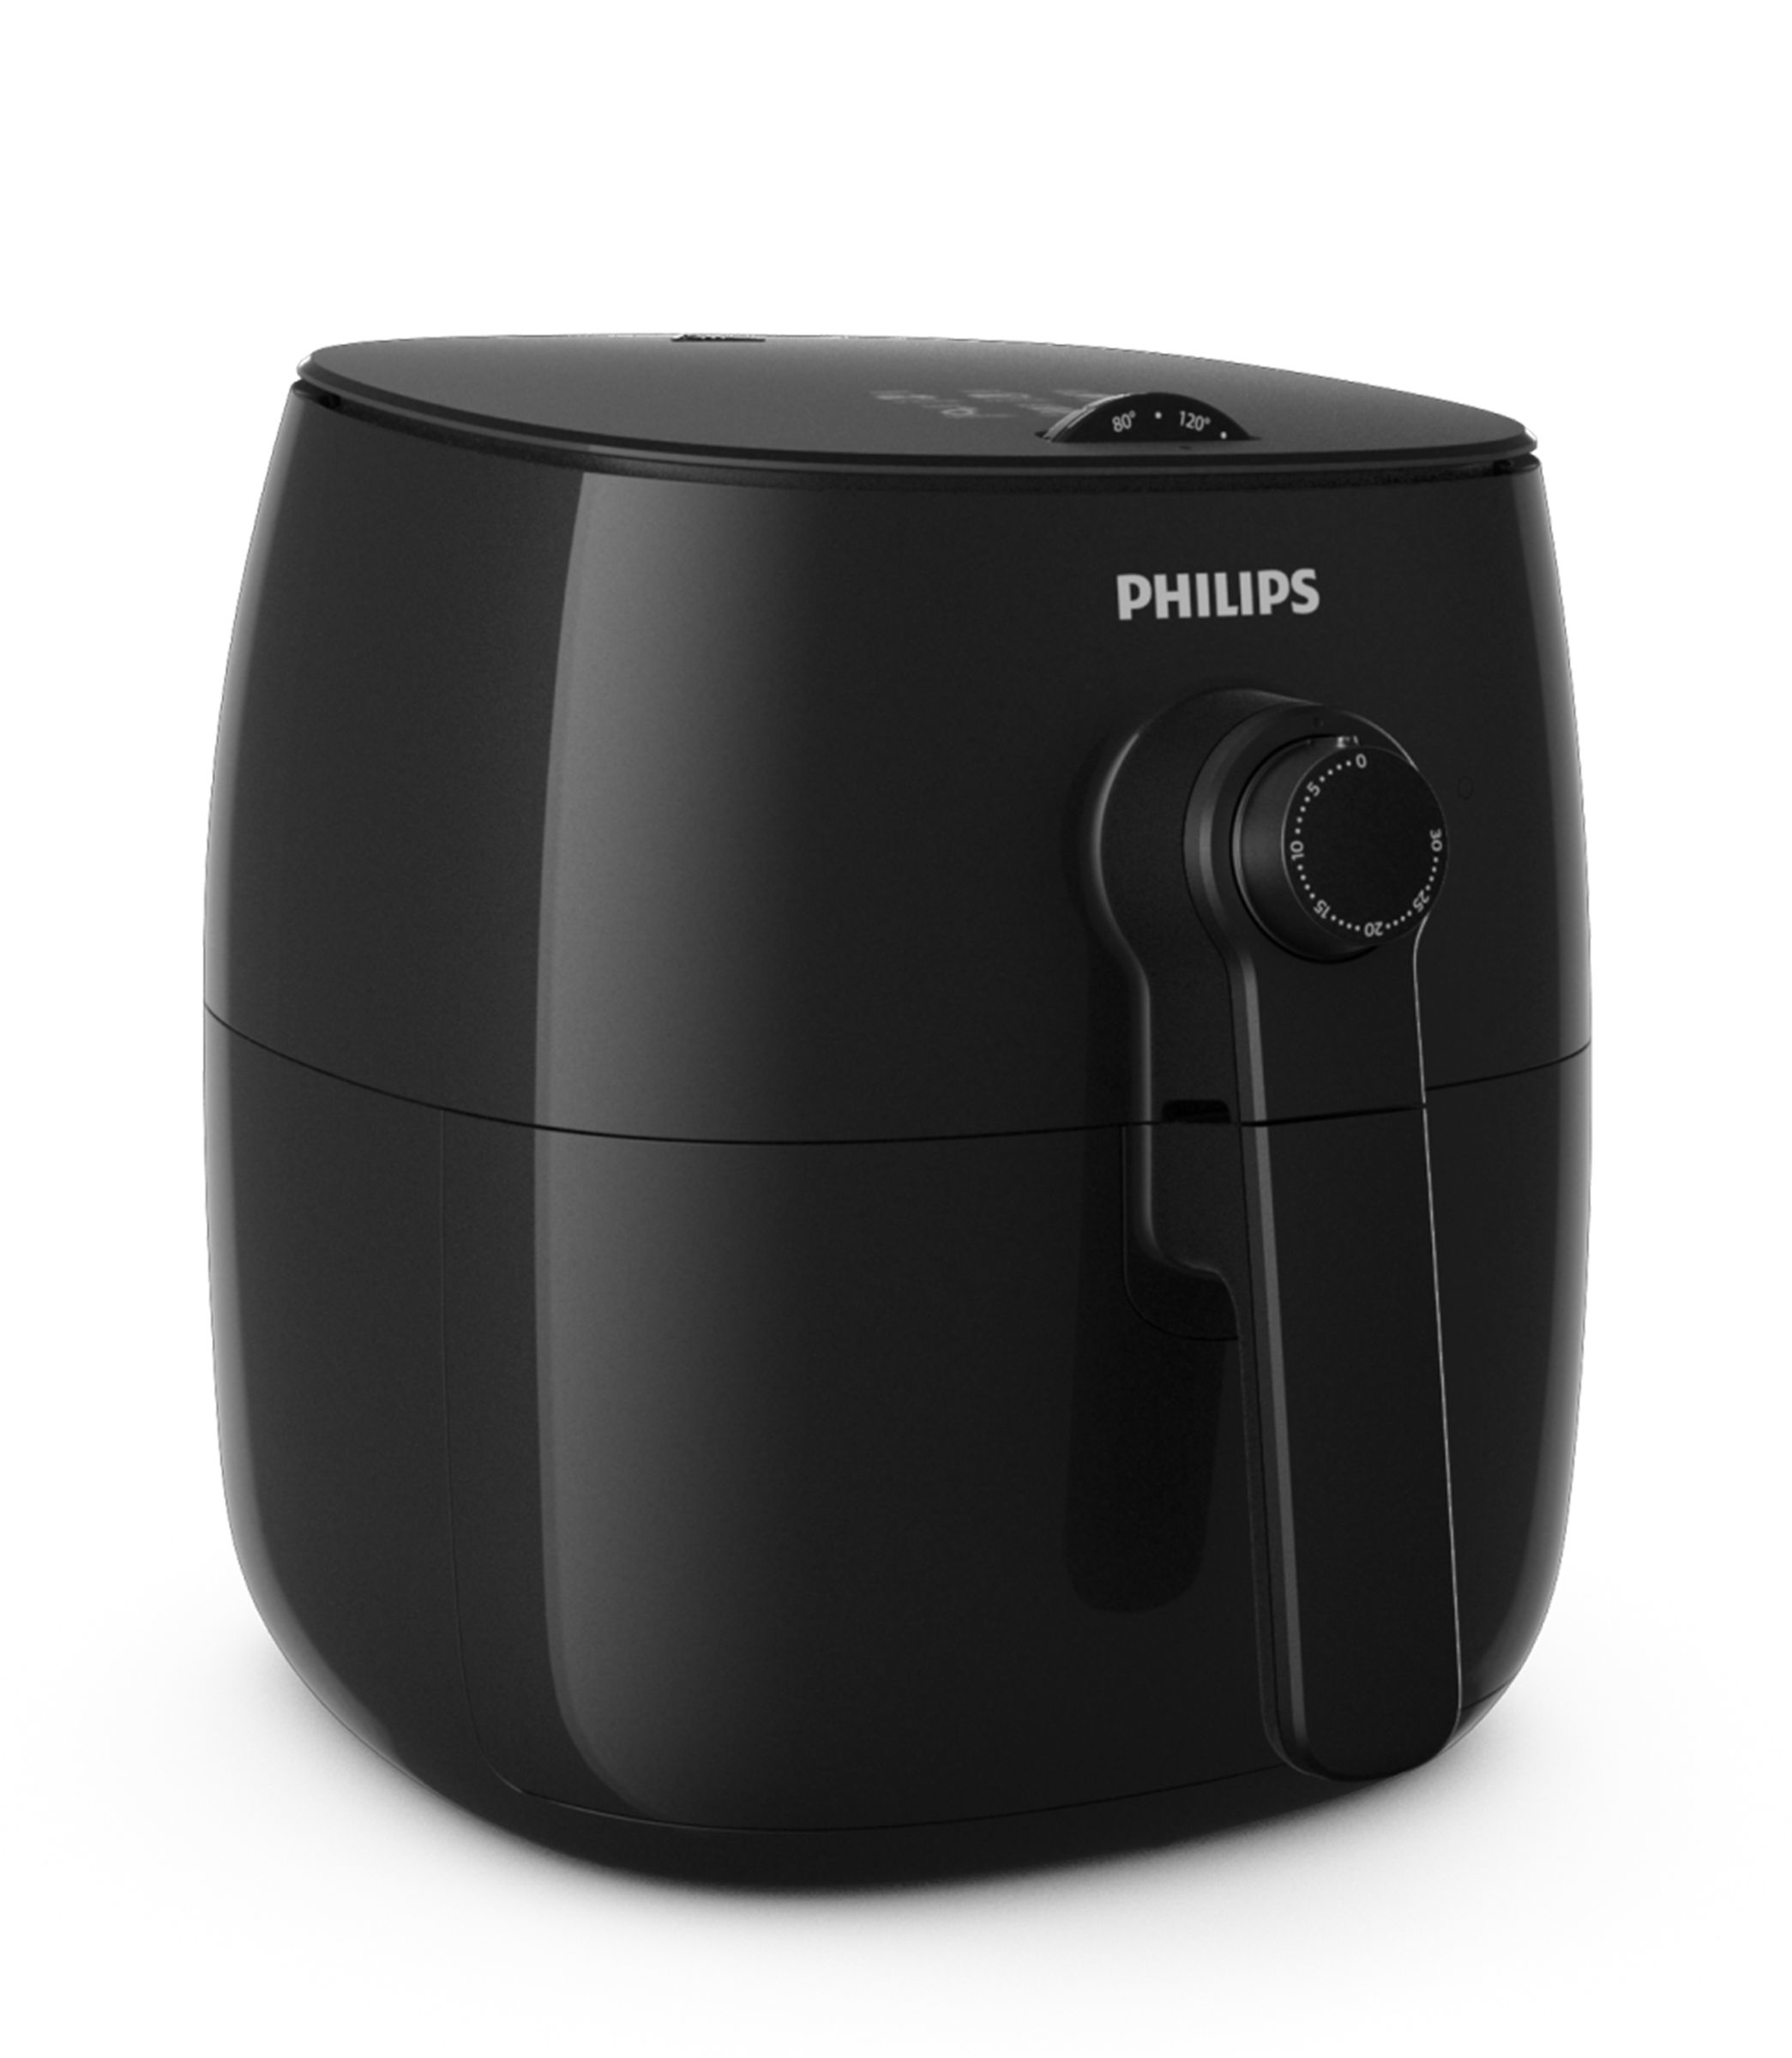 Philips HD 9621/90